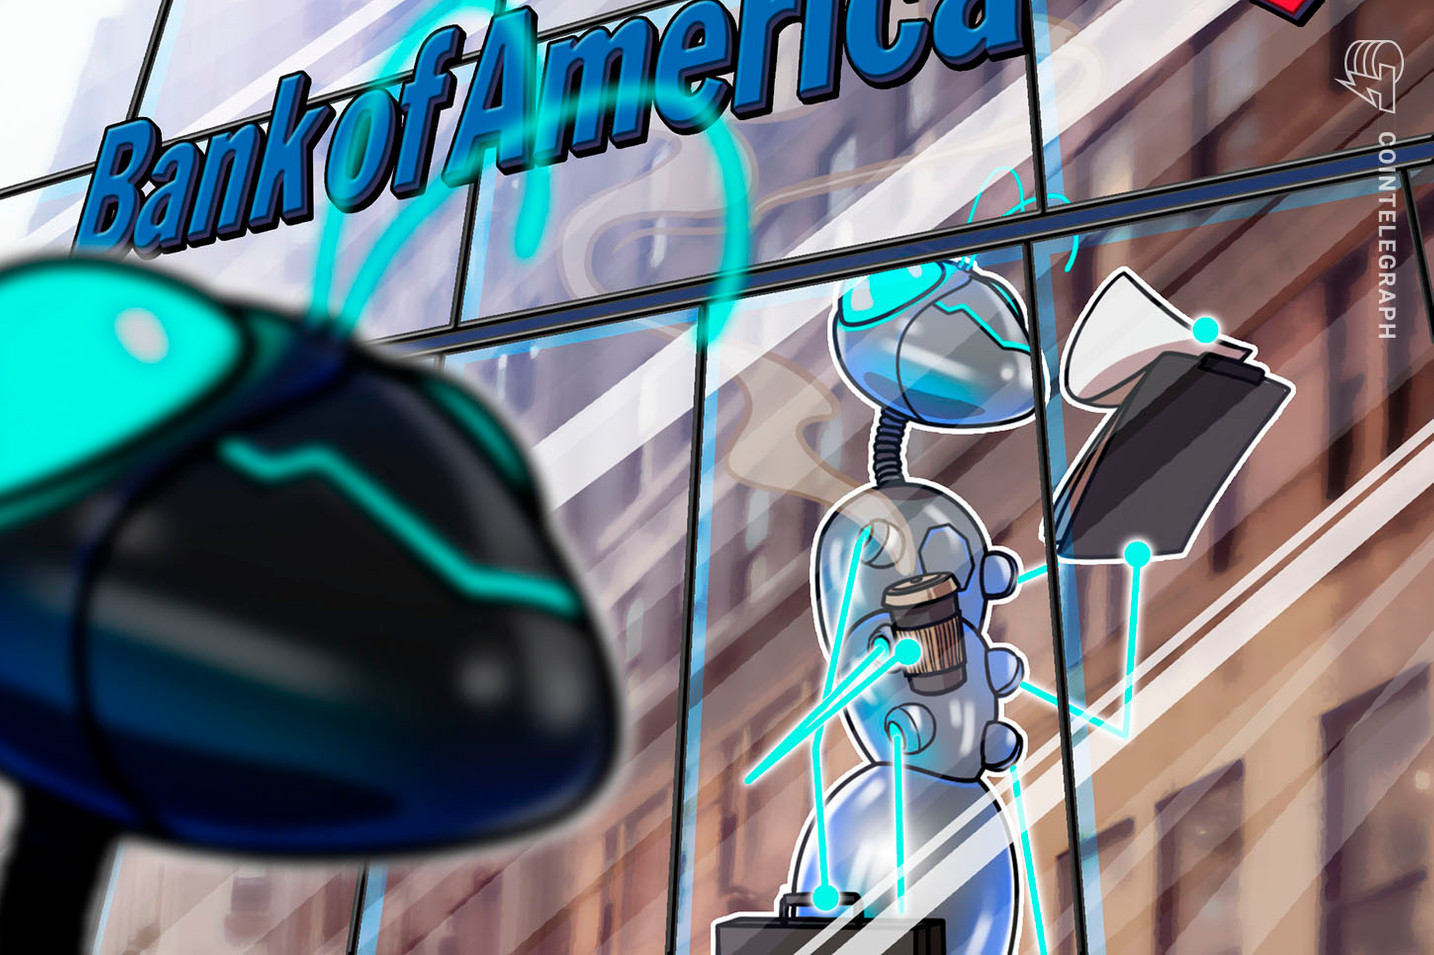 Bank of America's Blockchain Foray: Patent Trolling or Hedging Risks?